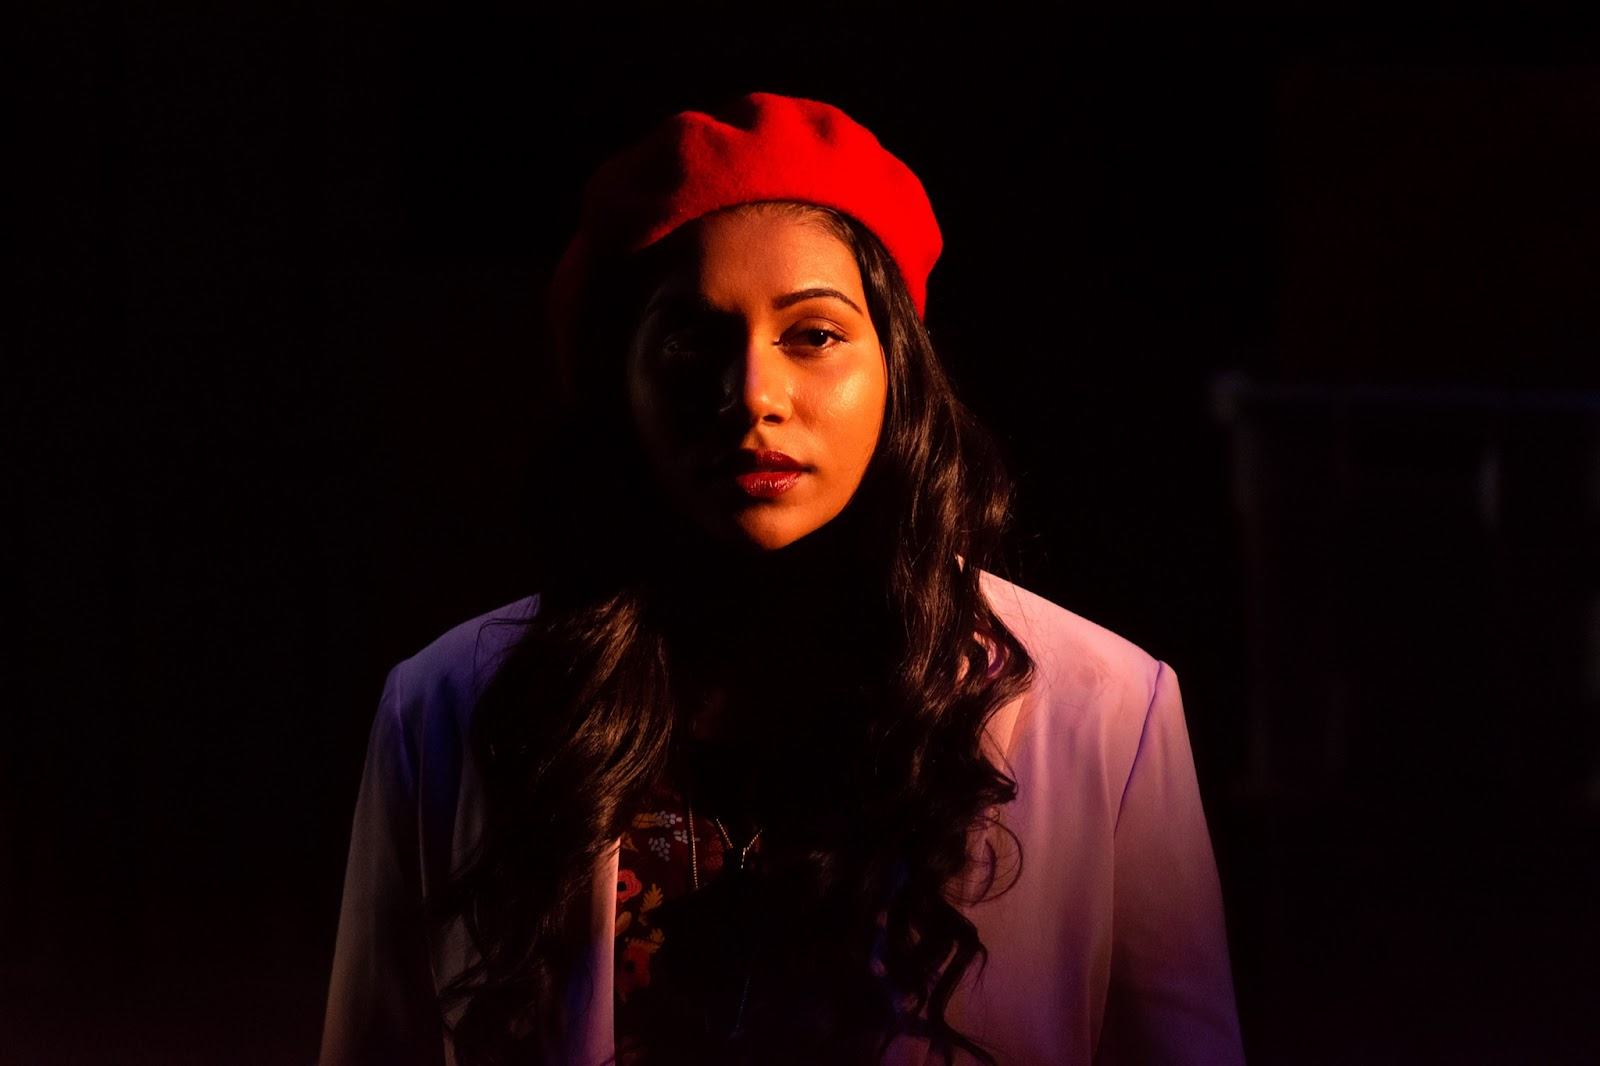 Caitlyn Hooper, with long dark hair, stands against a pitch black background while wearing a red cap and a light colored jacket.